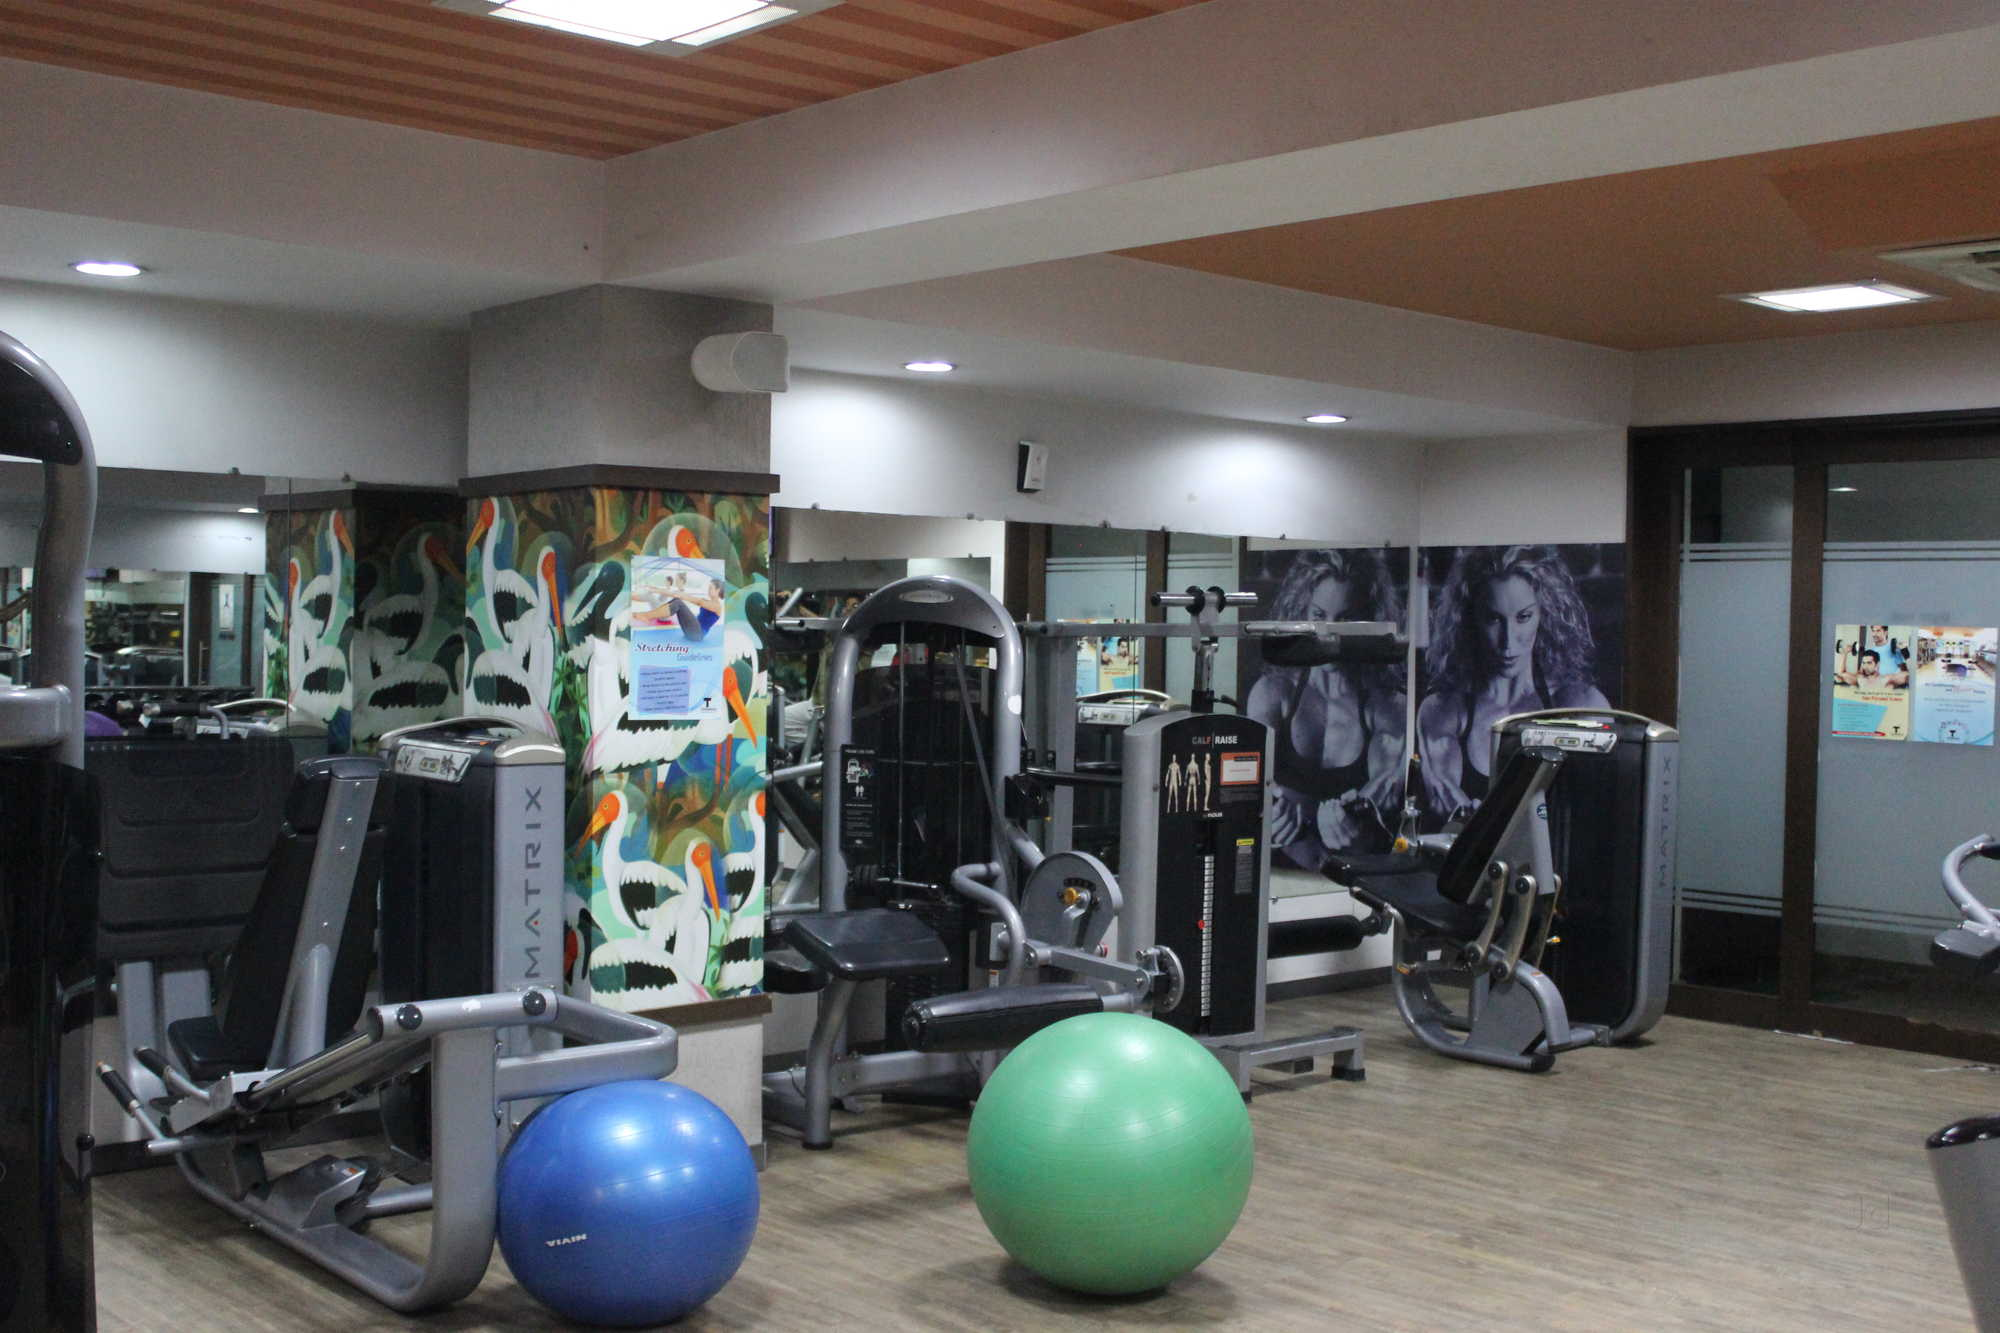 Top gyms in dehradun best body building fitness centres justdial